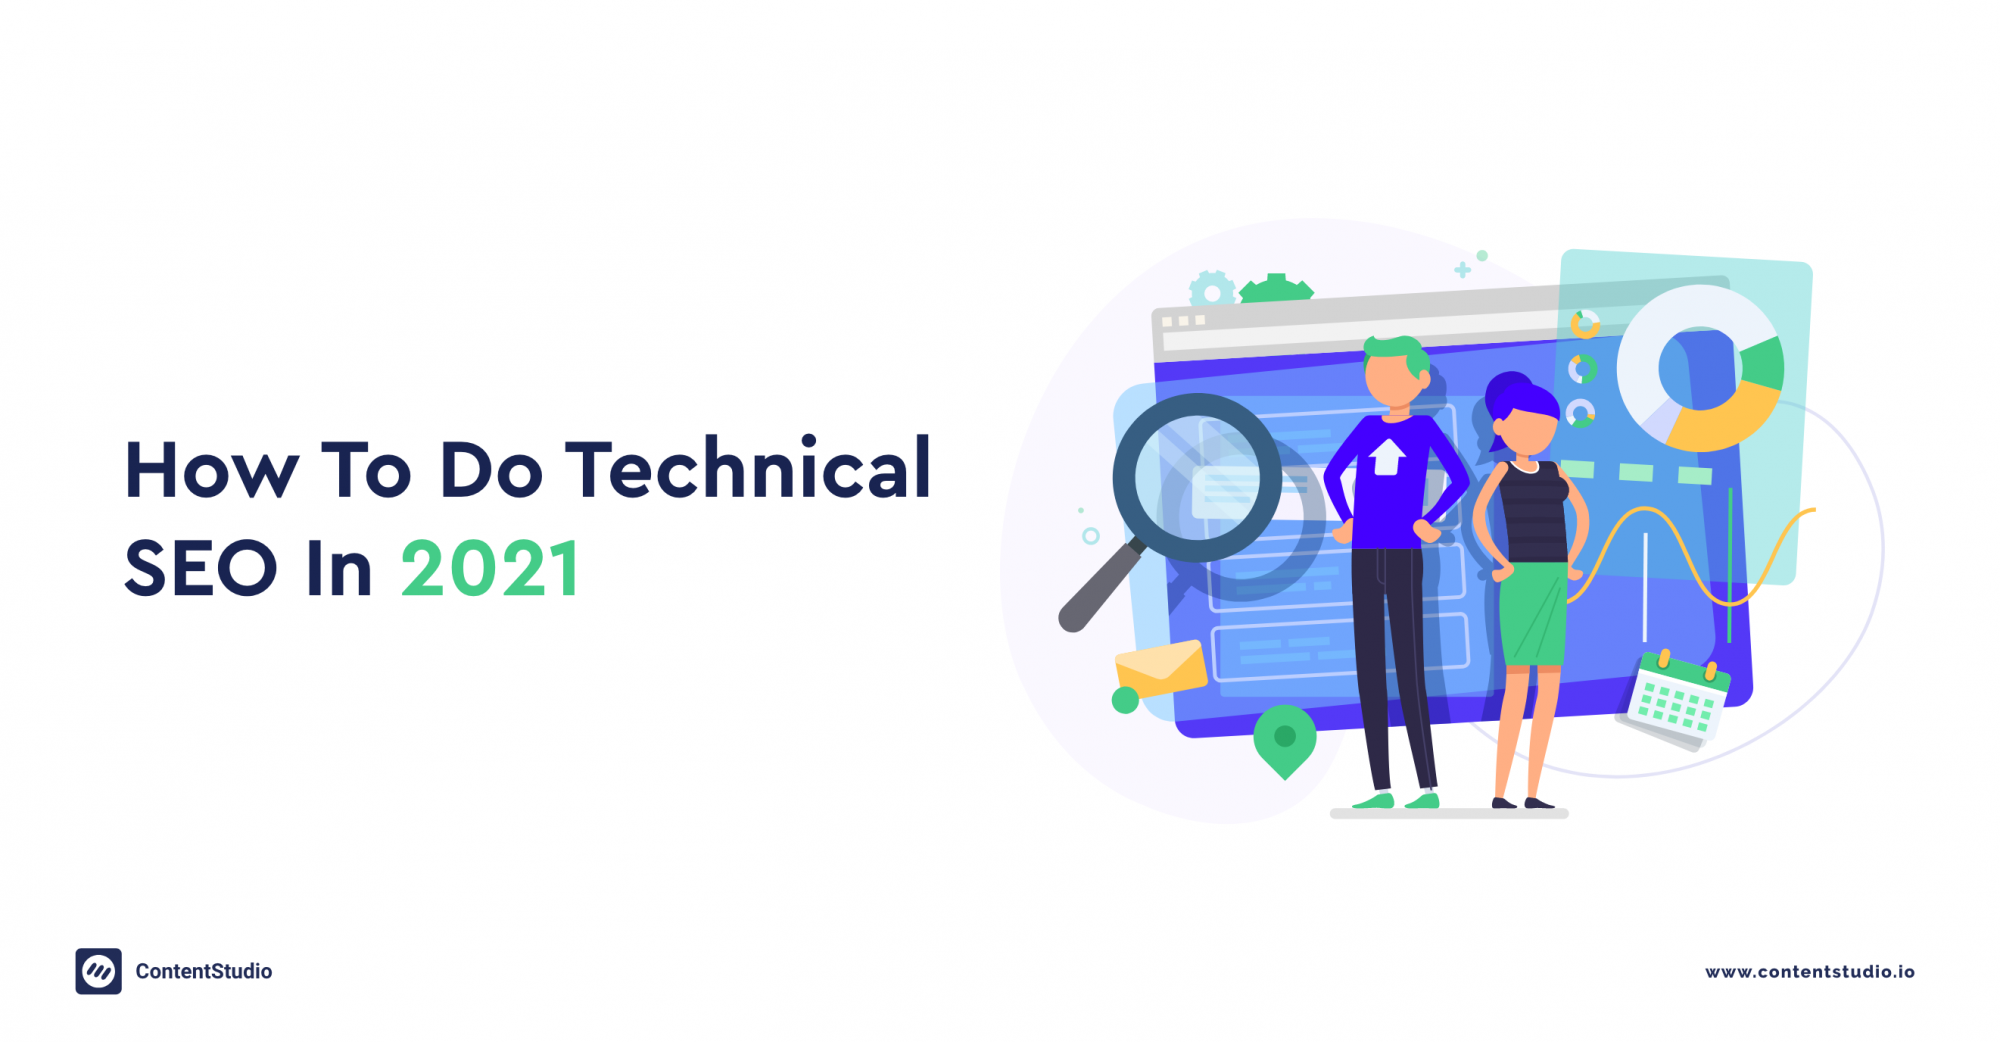 How to do technical SEO in 2021